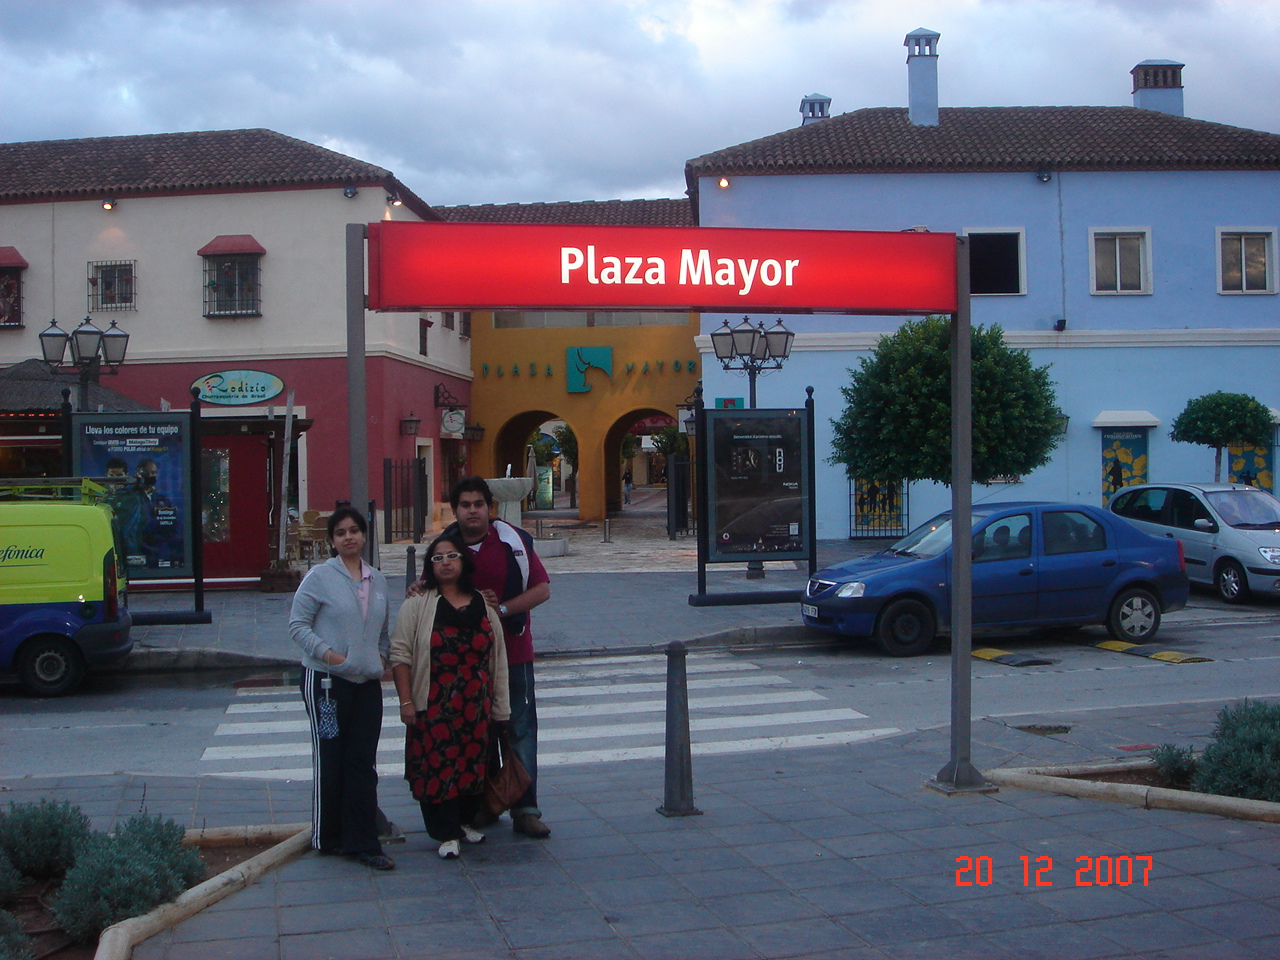 Plaza Mayor at Costa del Sol